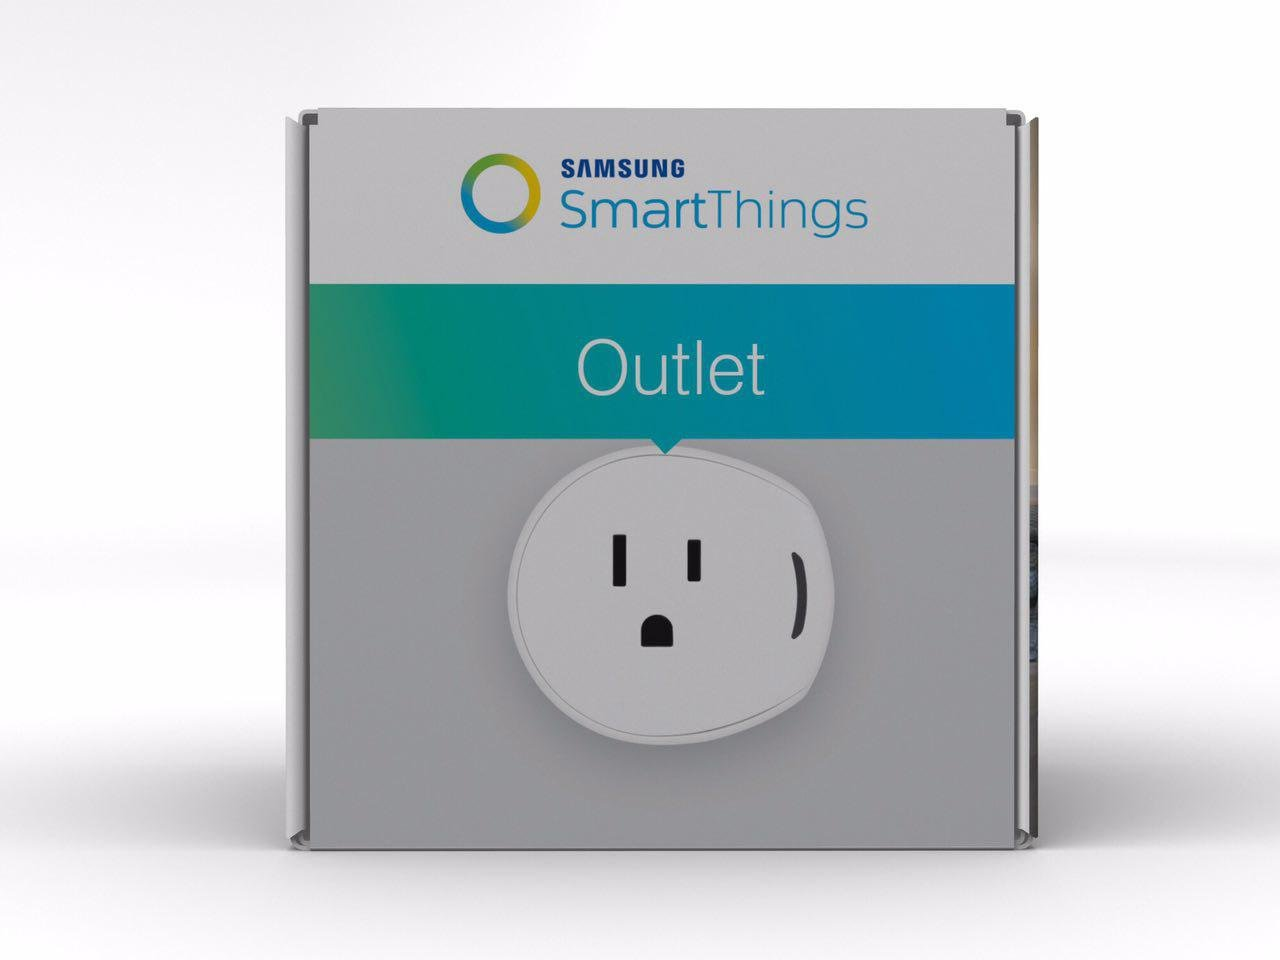 Samsung  F-OUT-US-2 SmartThings Outlet, White by Samsung SmartThings (Image #4)